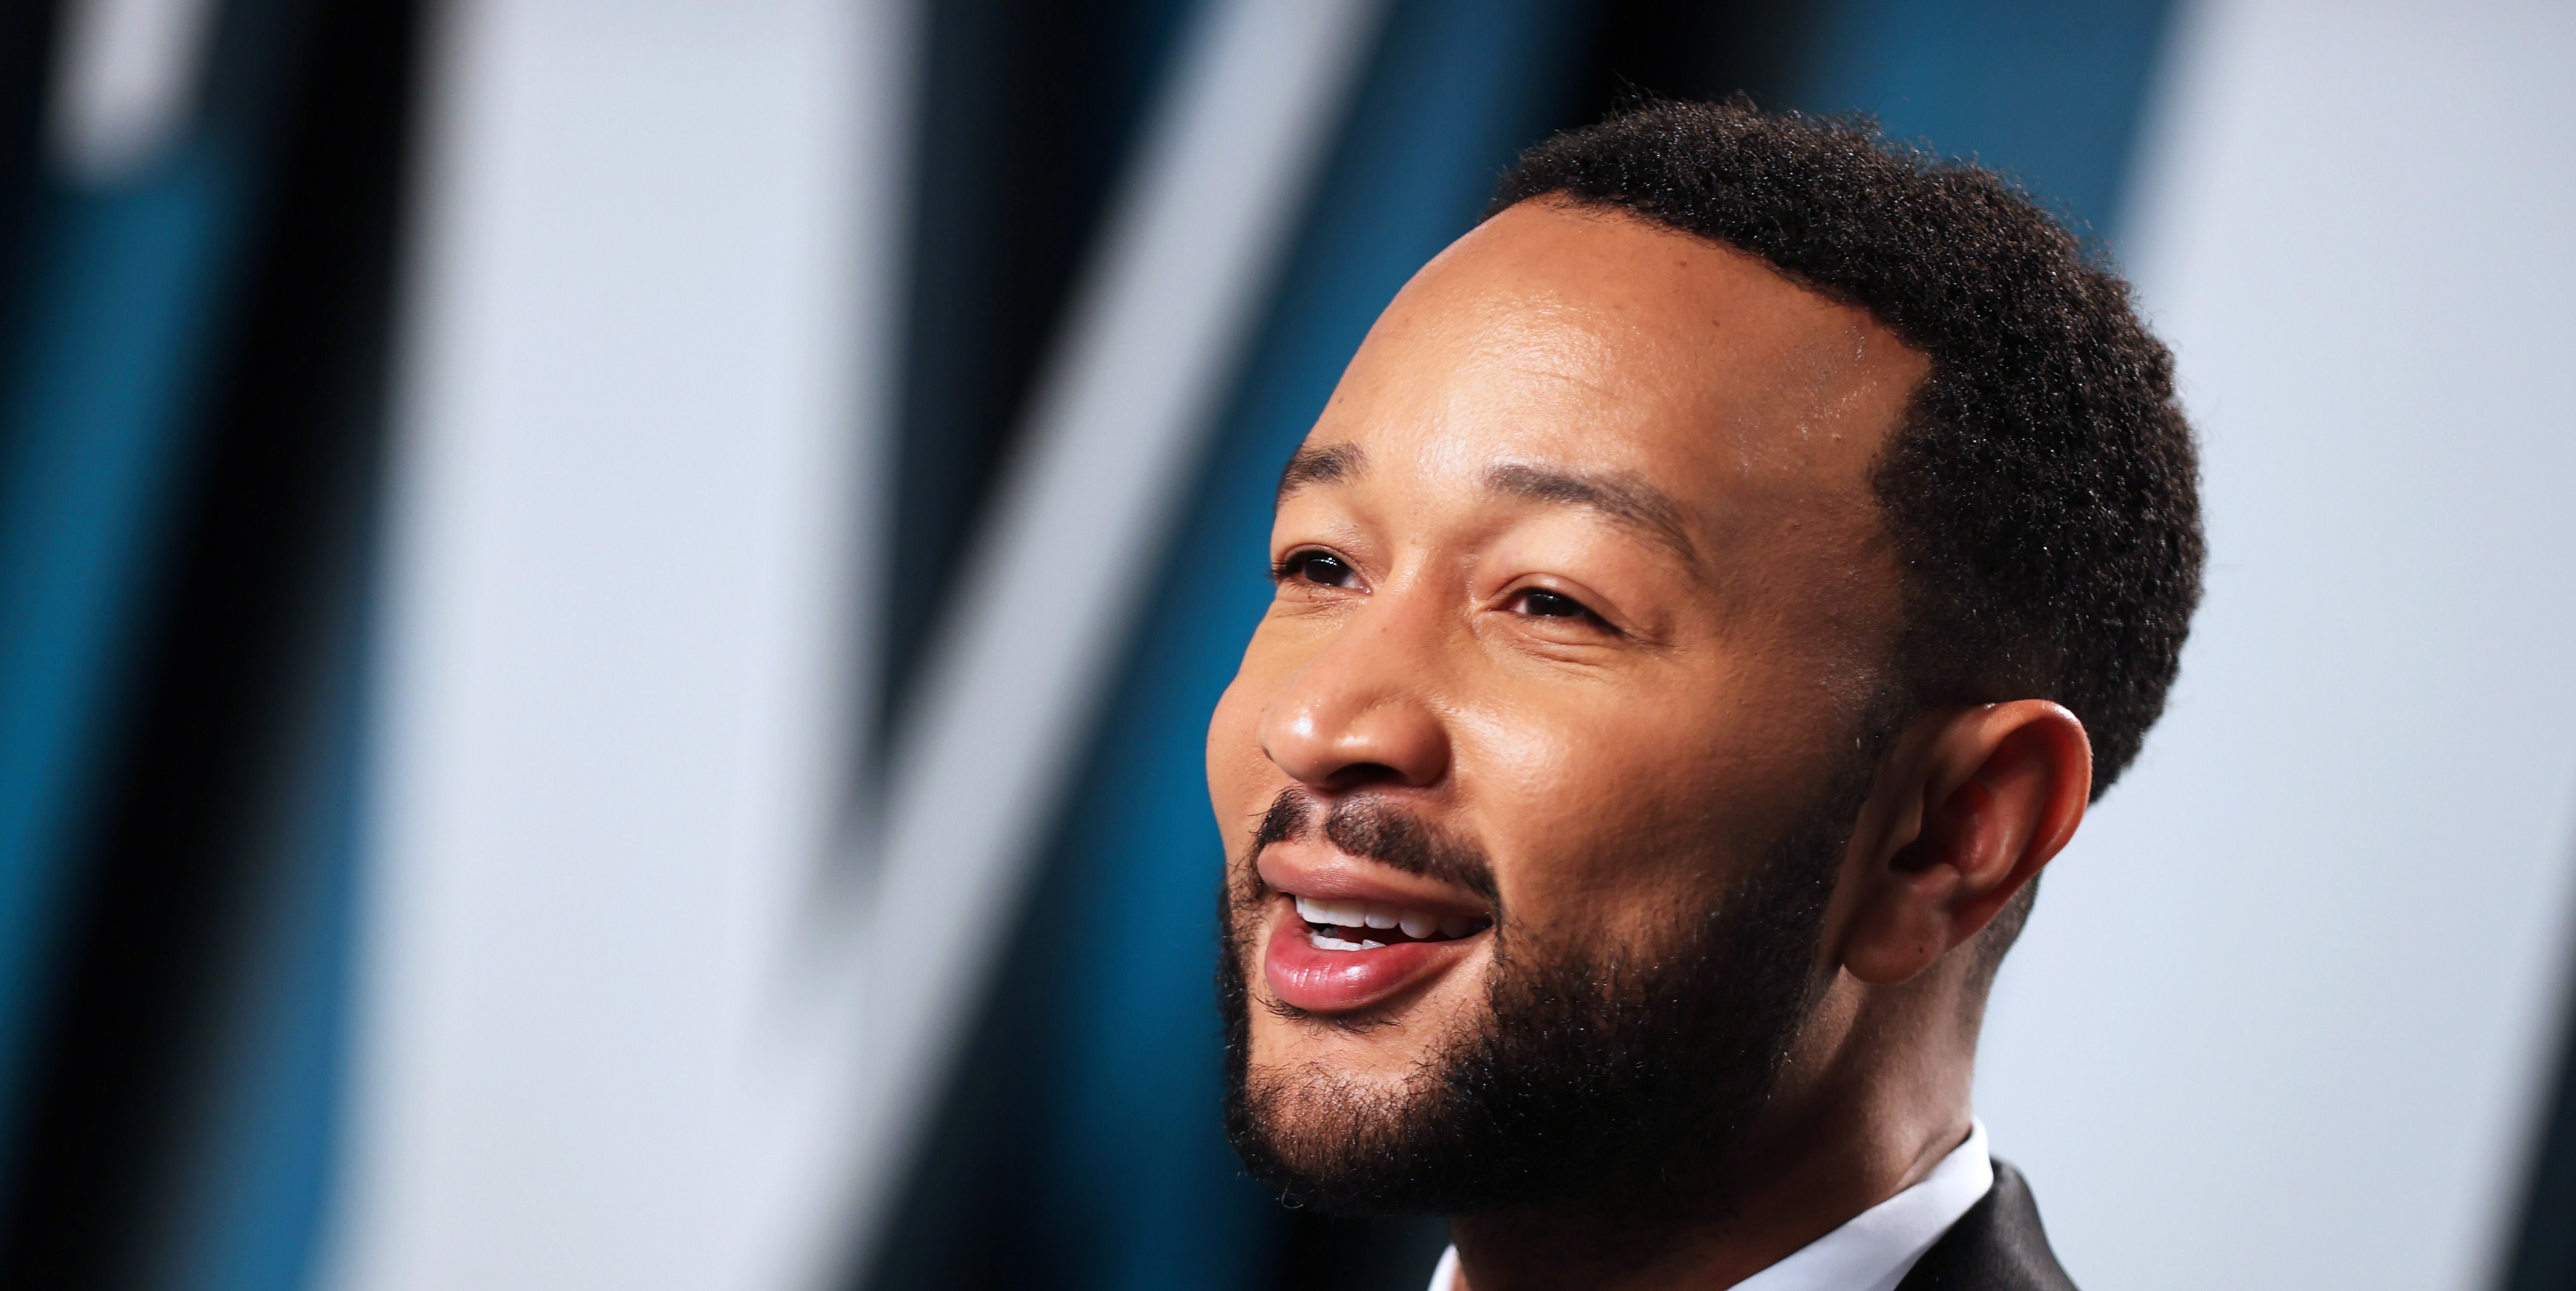 John Legend Live Streaming Free Instagram Concert From Home